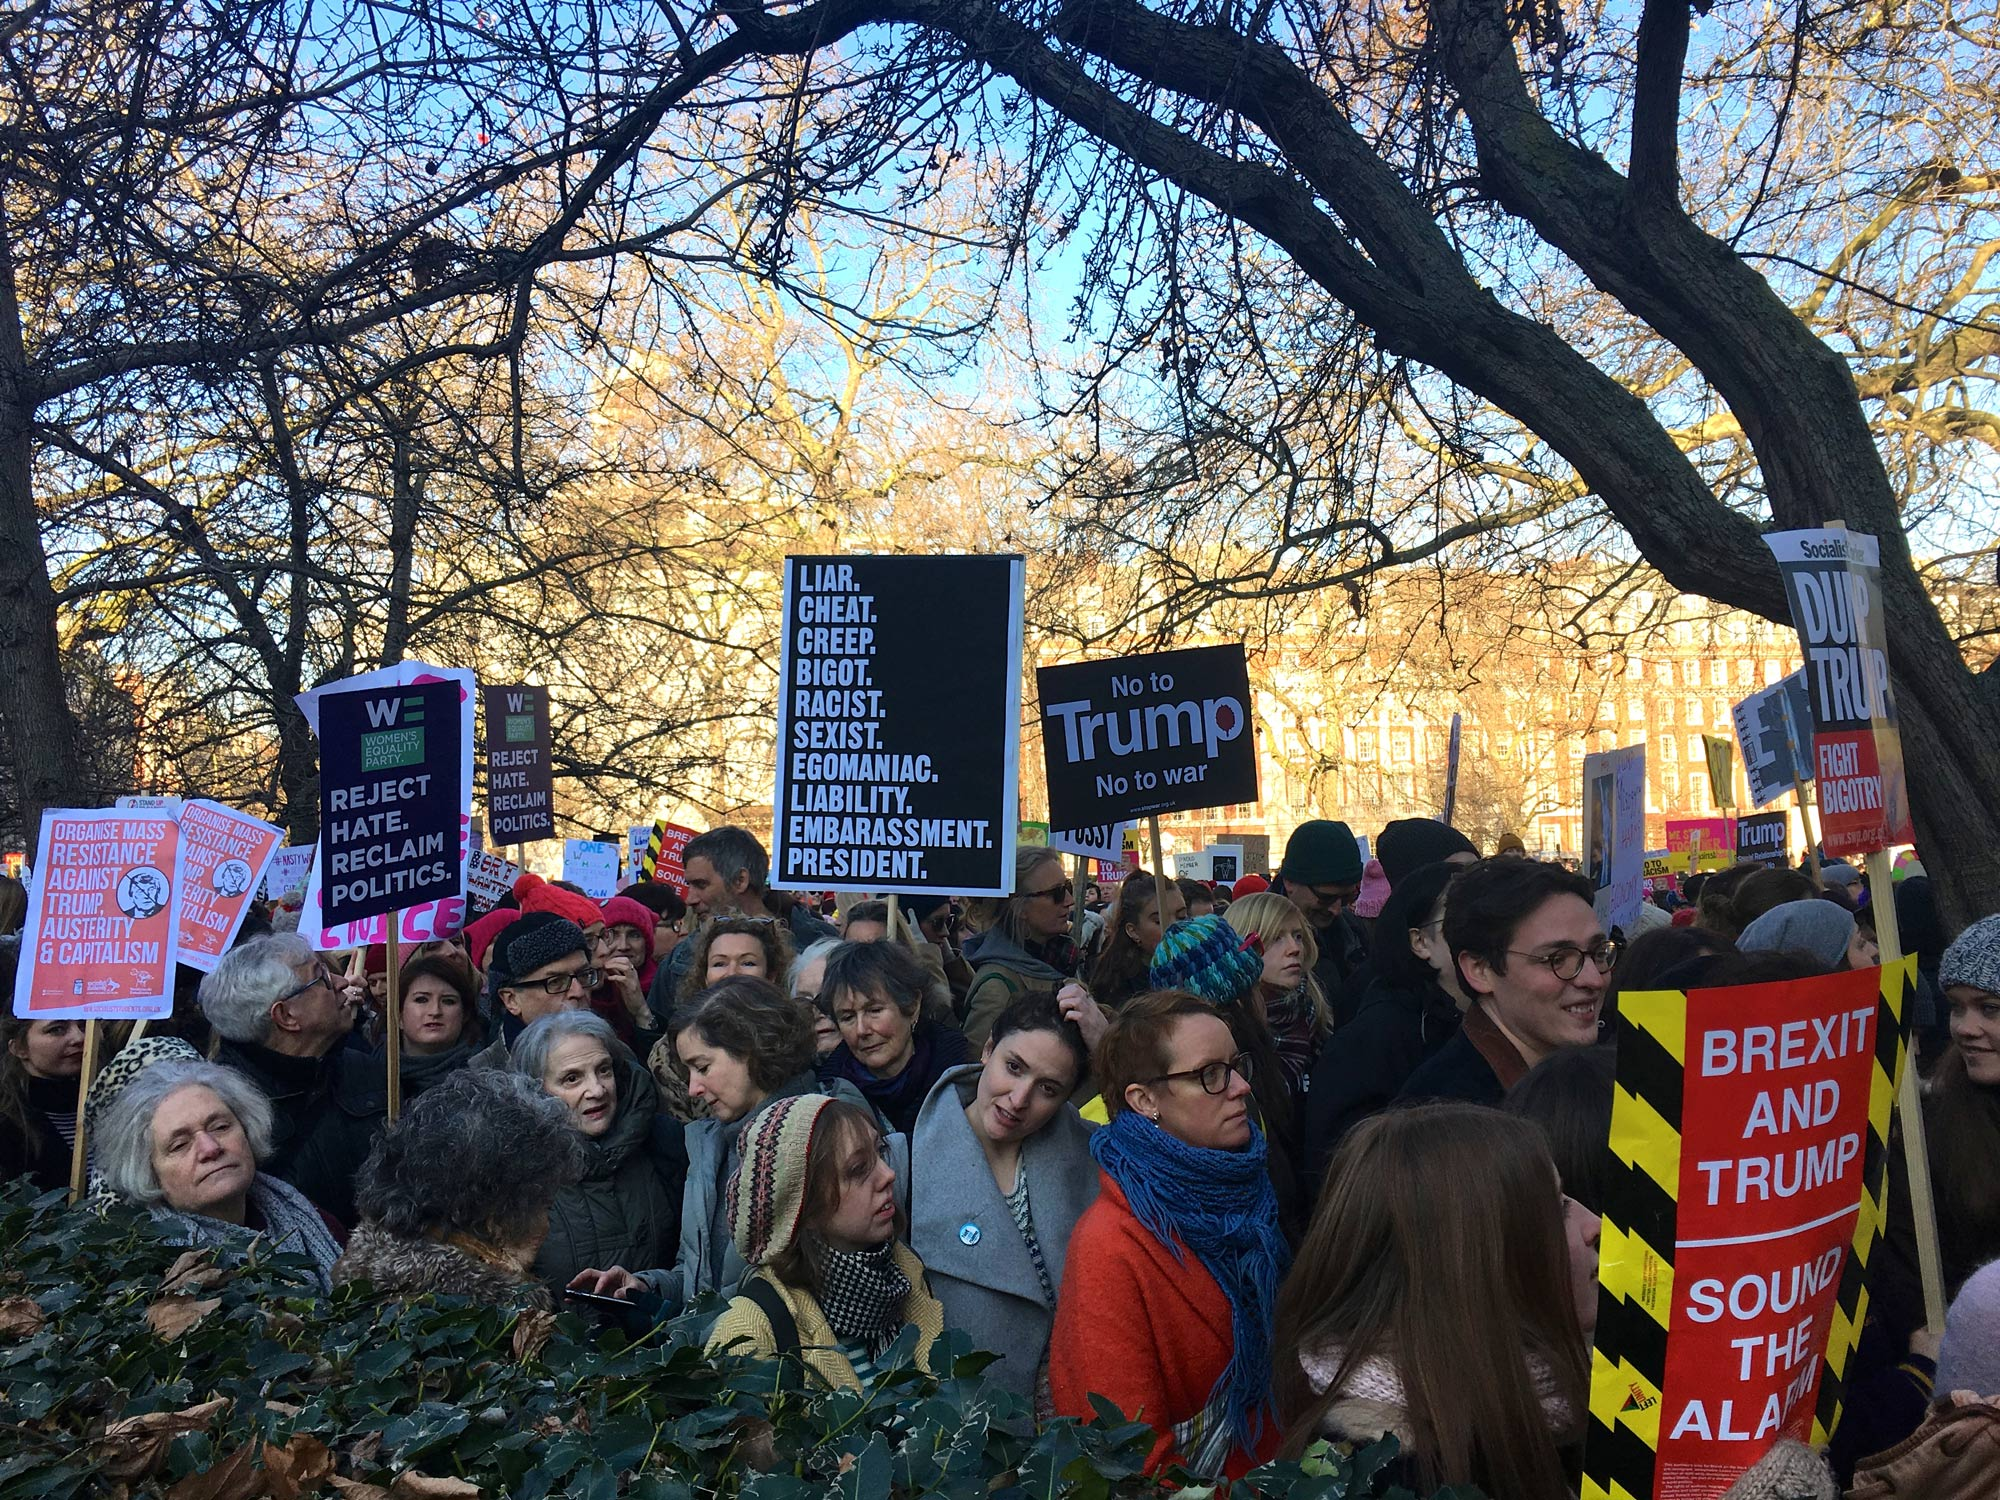 Protestors hold up signs with a list of complaints against U.S. President Trump in London on Jan. 21, 2017. (Photo by Devi Lockwood/GroundTruth)